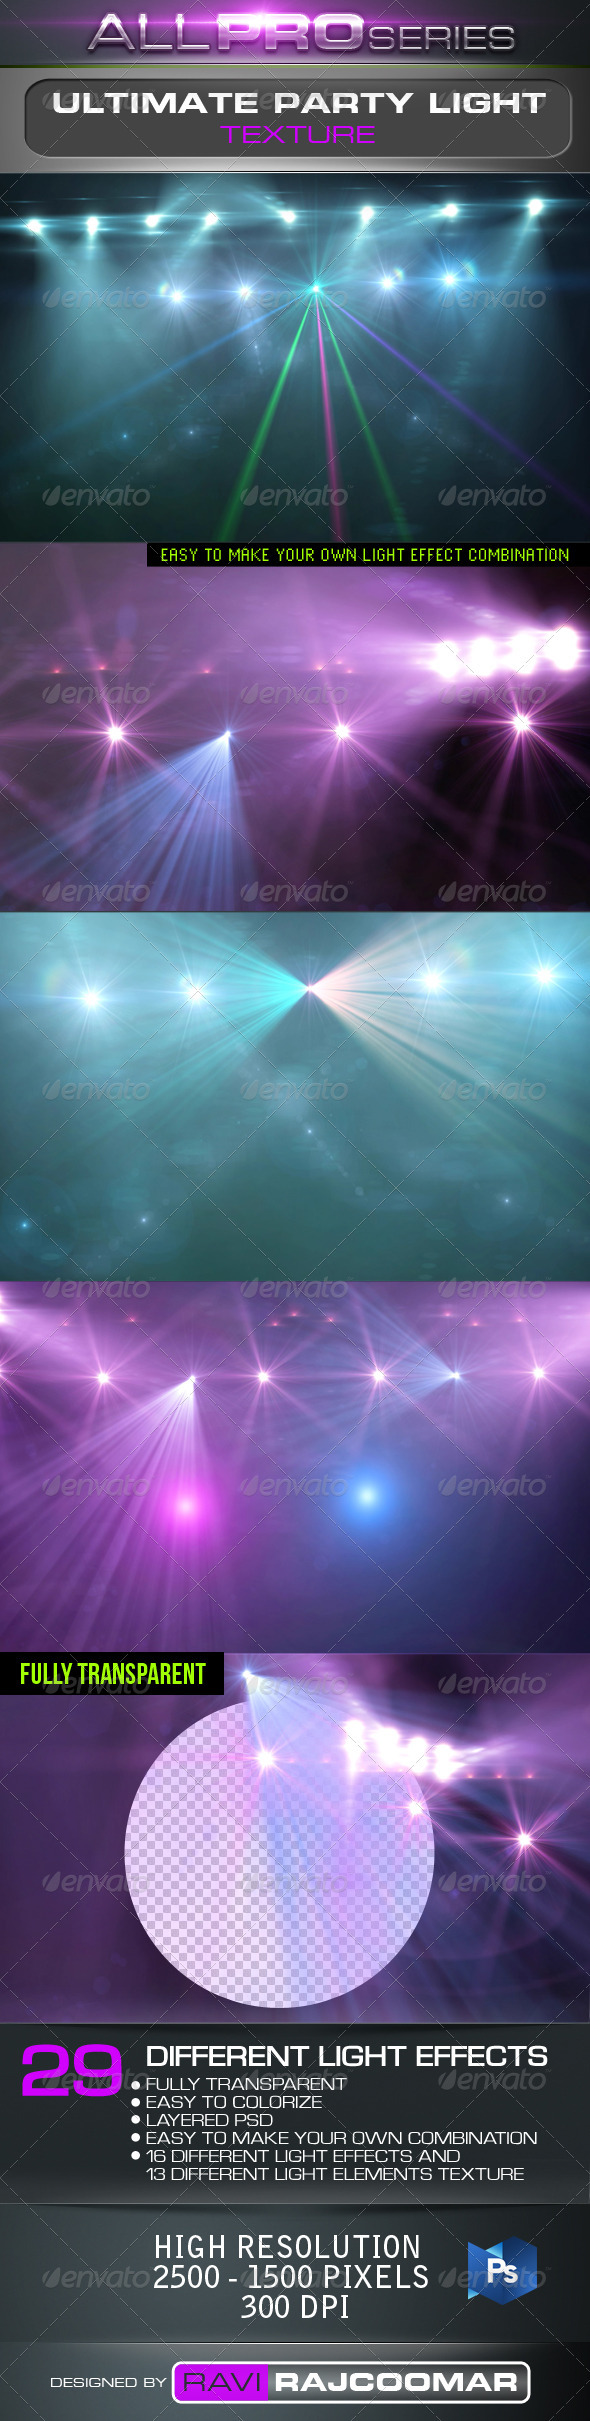 Ulitimate Party Light Effects - Abstract Illustrations